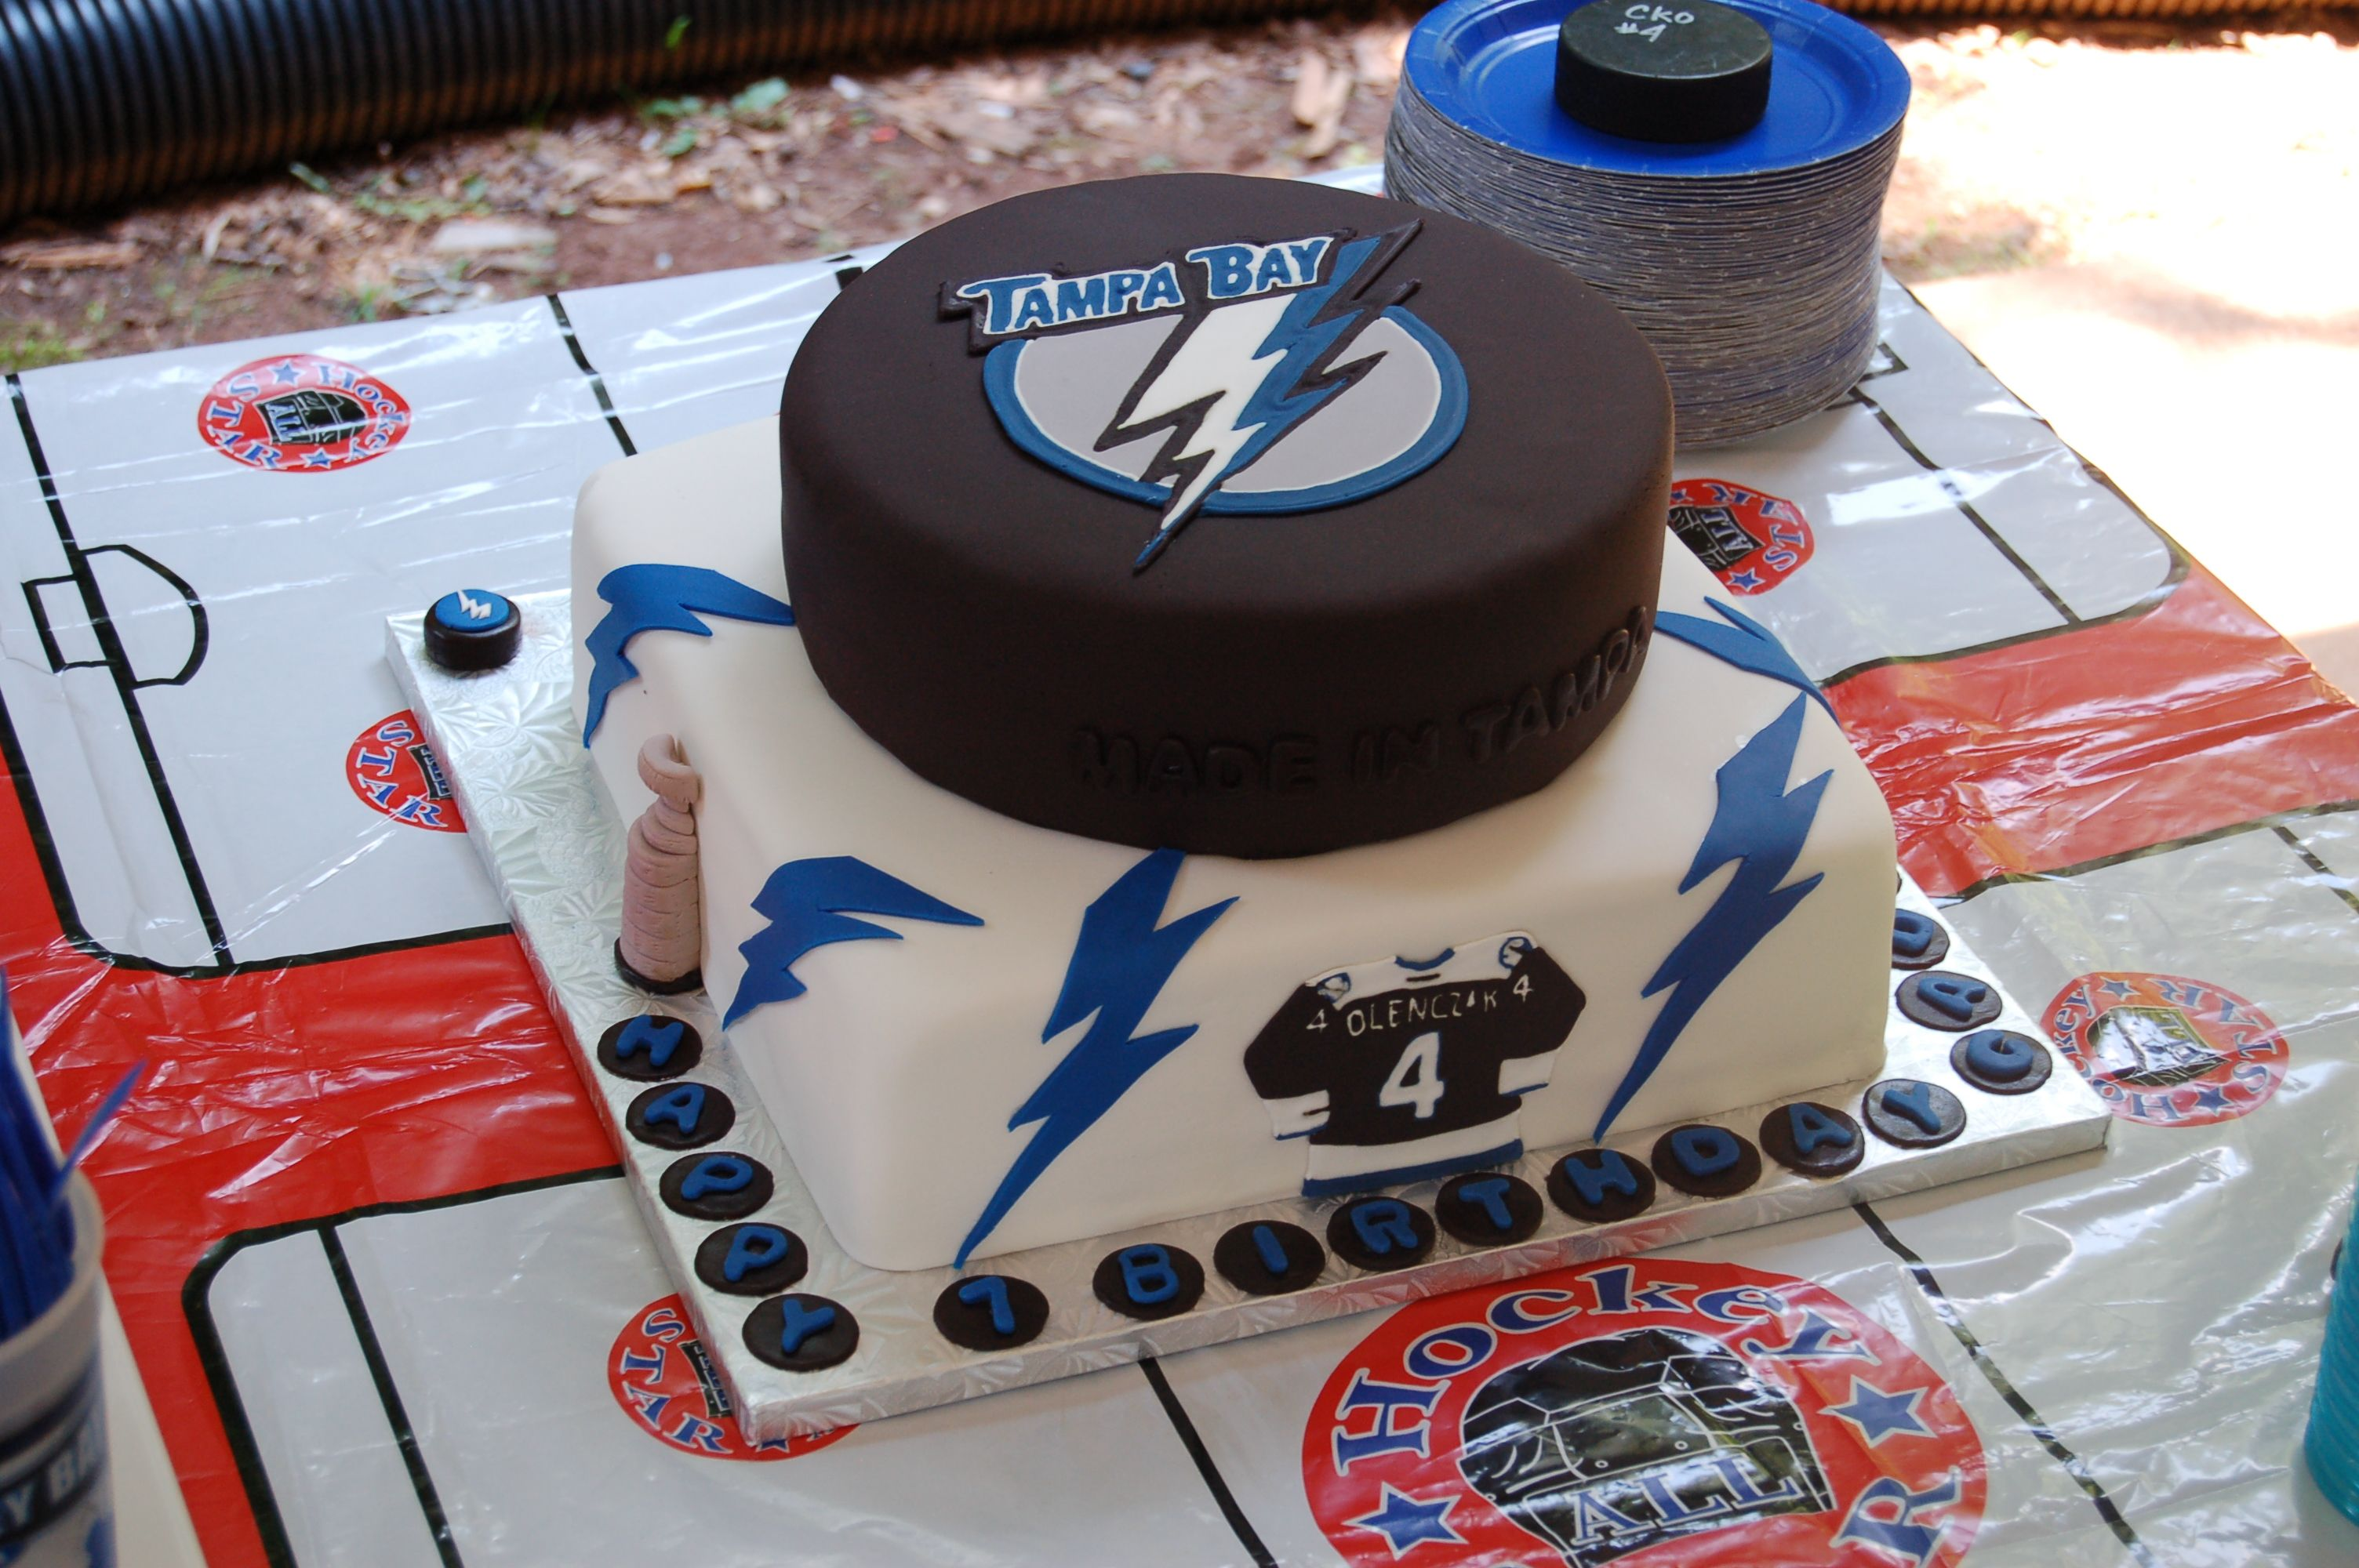 Thunder cake clipart vector library download Tampa Bay Lightning cake I made for my son\'s birthday ... vector library download